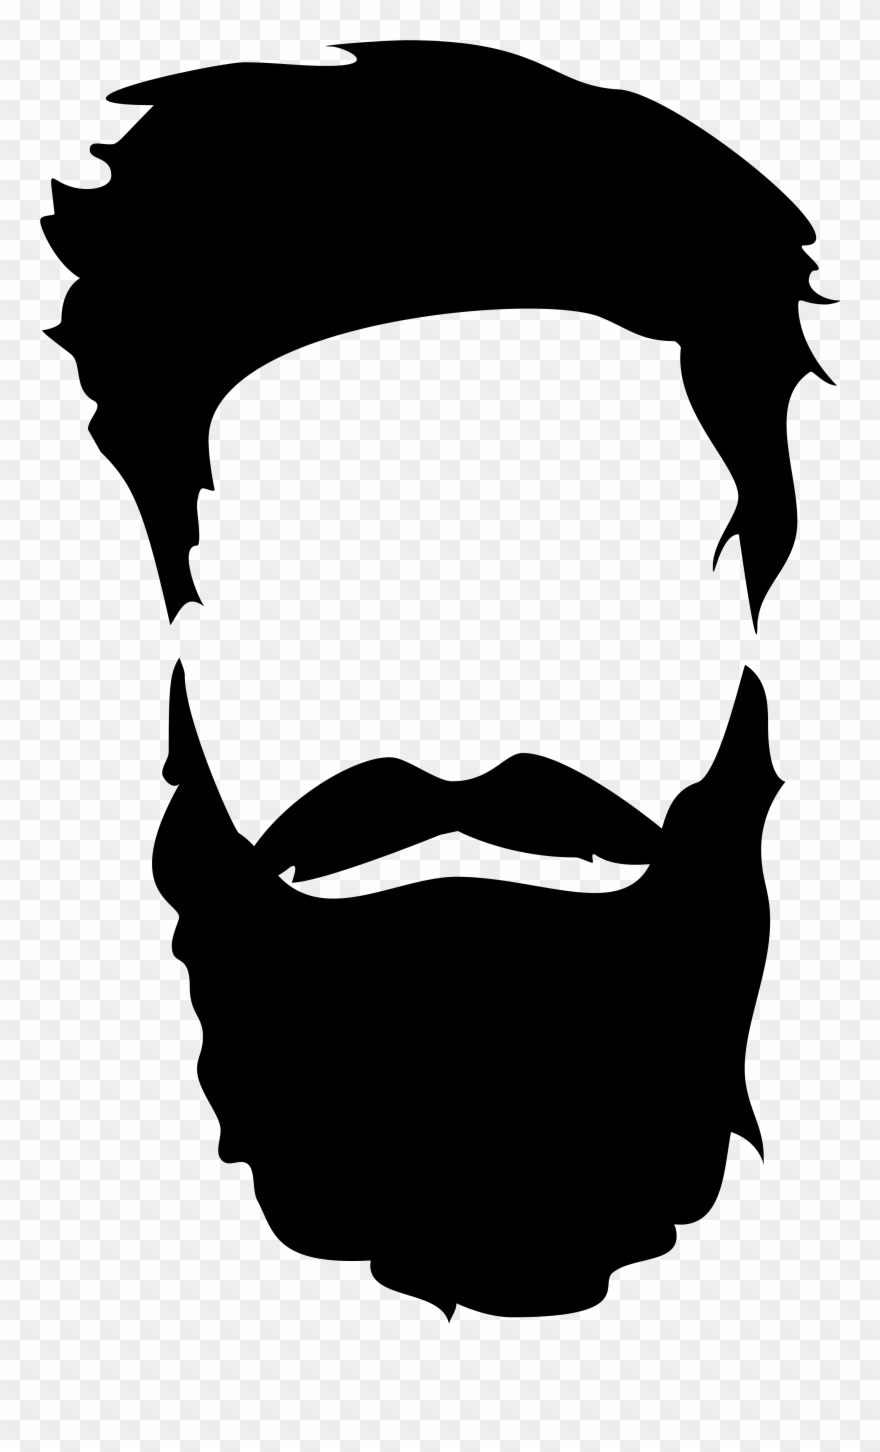 Side beard clipart clip art library Hair Beard Png Clip Art Gallery Yopriceville - Beard And ... clip art library